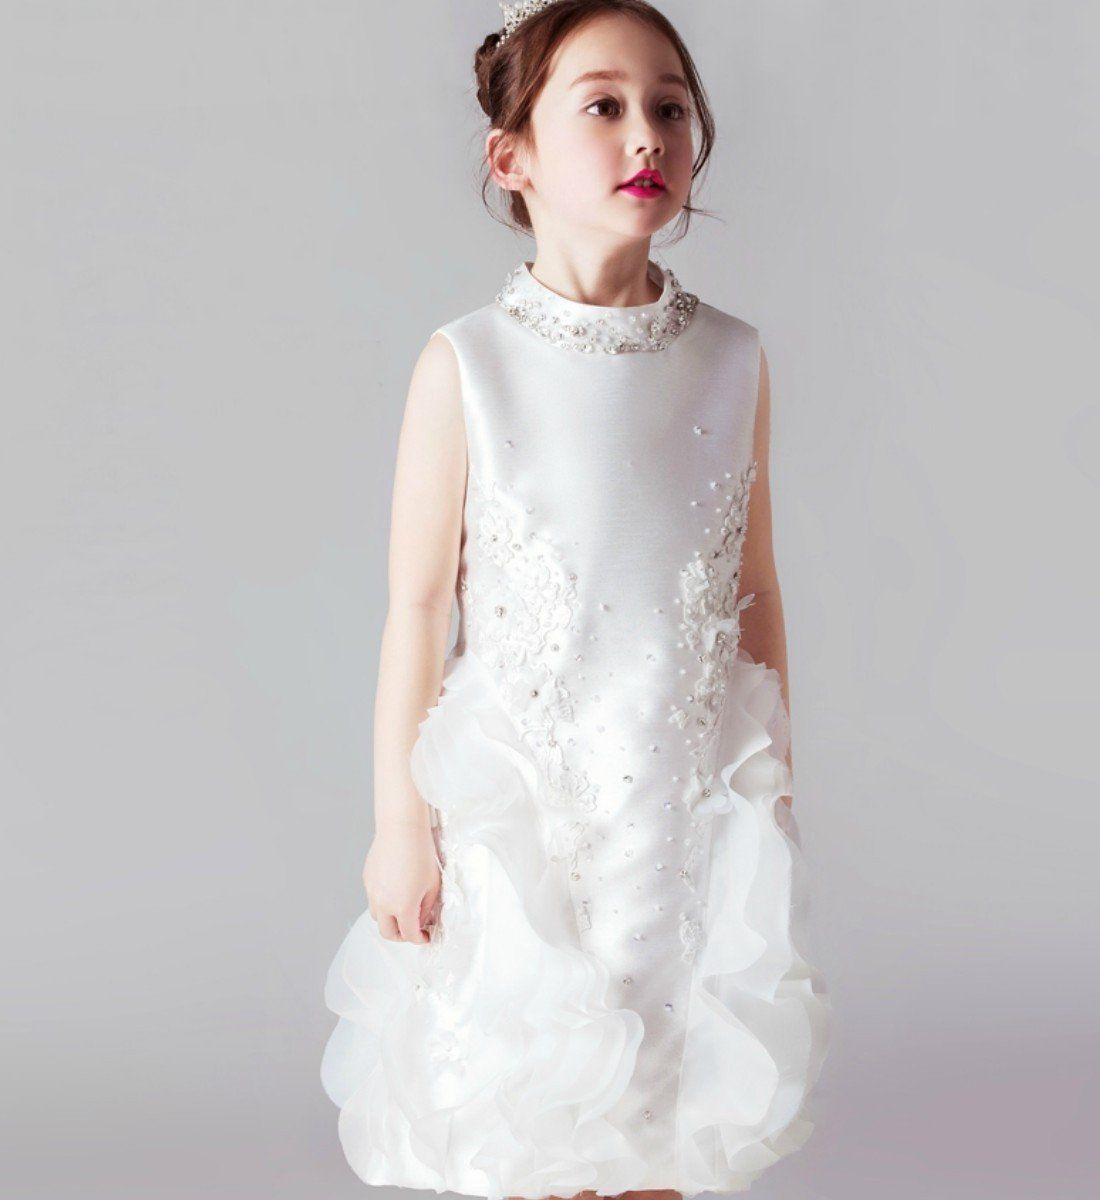 Browse The Latest Fashion of Girly Shop Chic & Fancy Flower Applique Sleeveless Round Neckline Knee Length Tiered Little Girl Party Dress . Free Shipping!